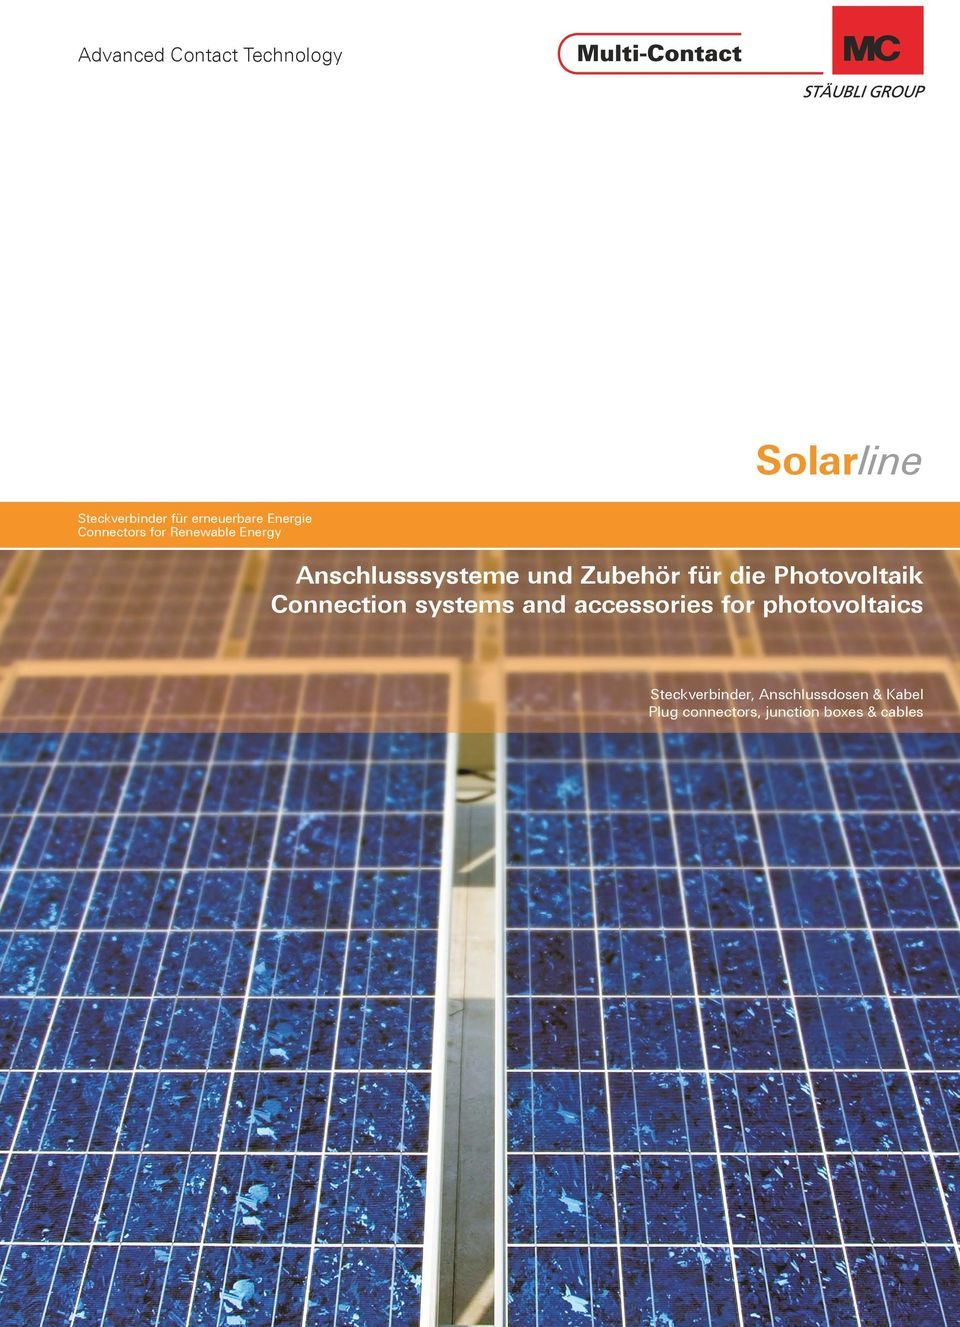 Connection systems and accessories for photovoltaics